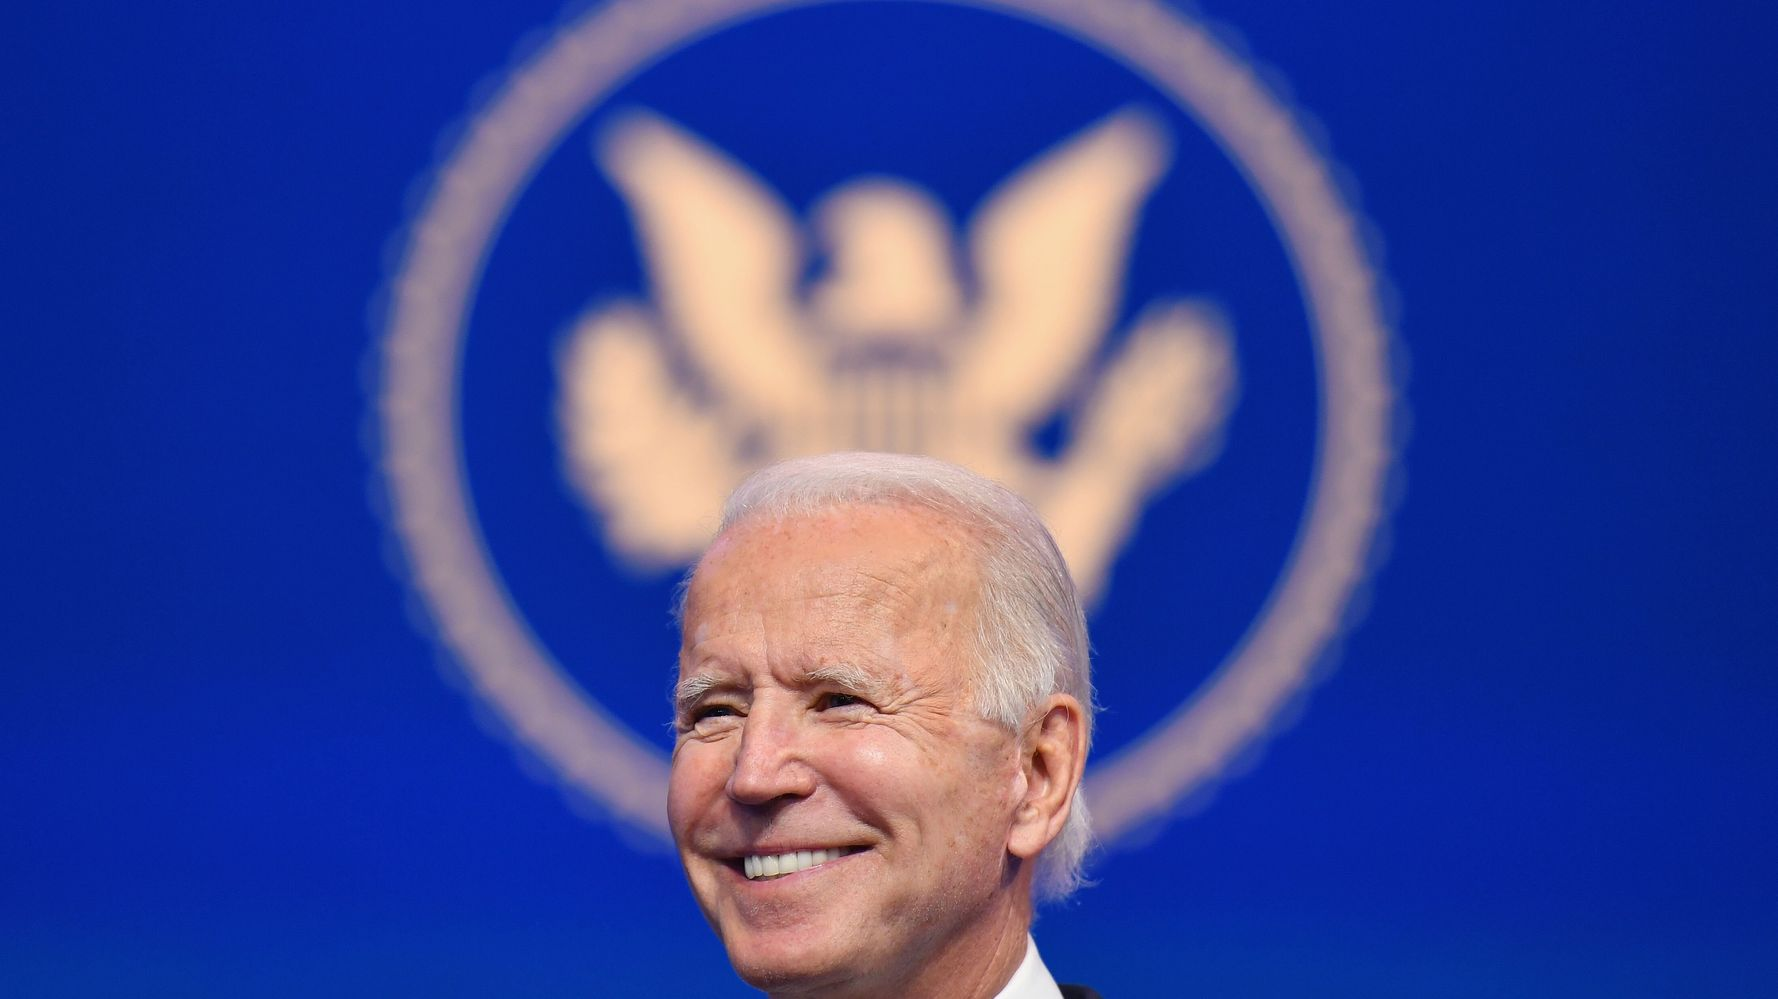 Joe Biden Won. But Our Politics Are Incredibly Unstable.